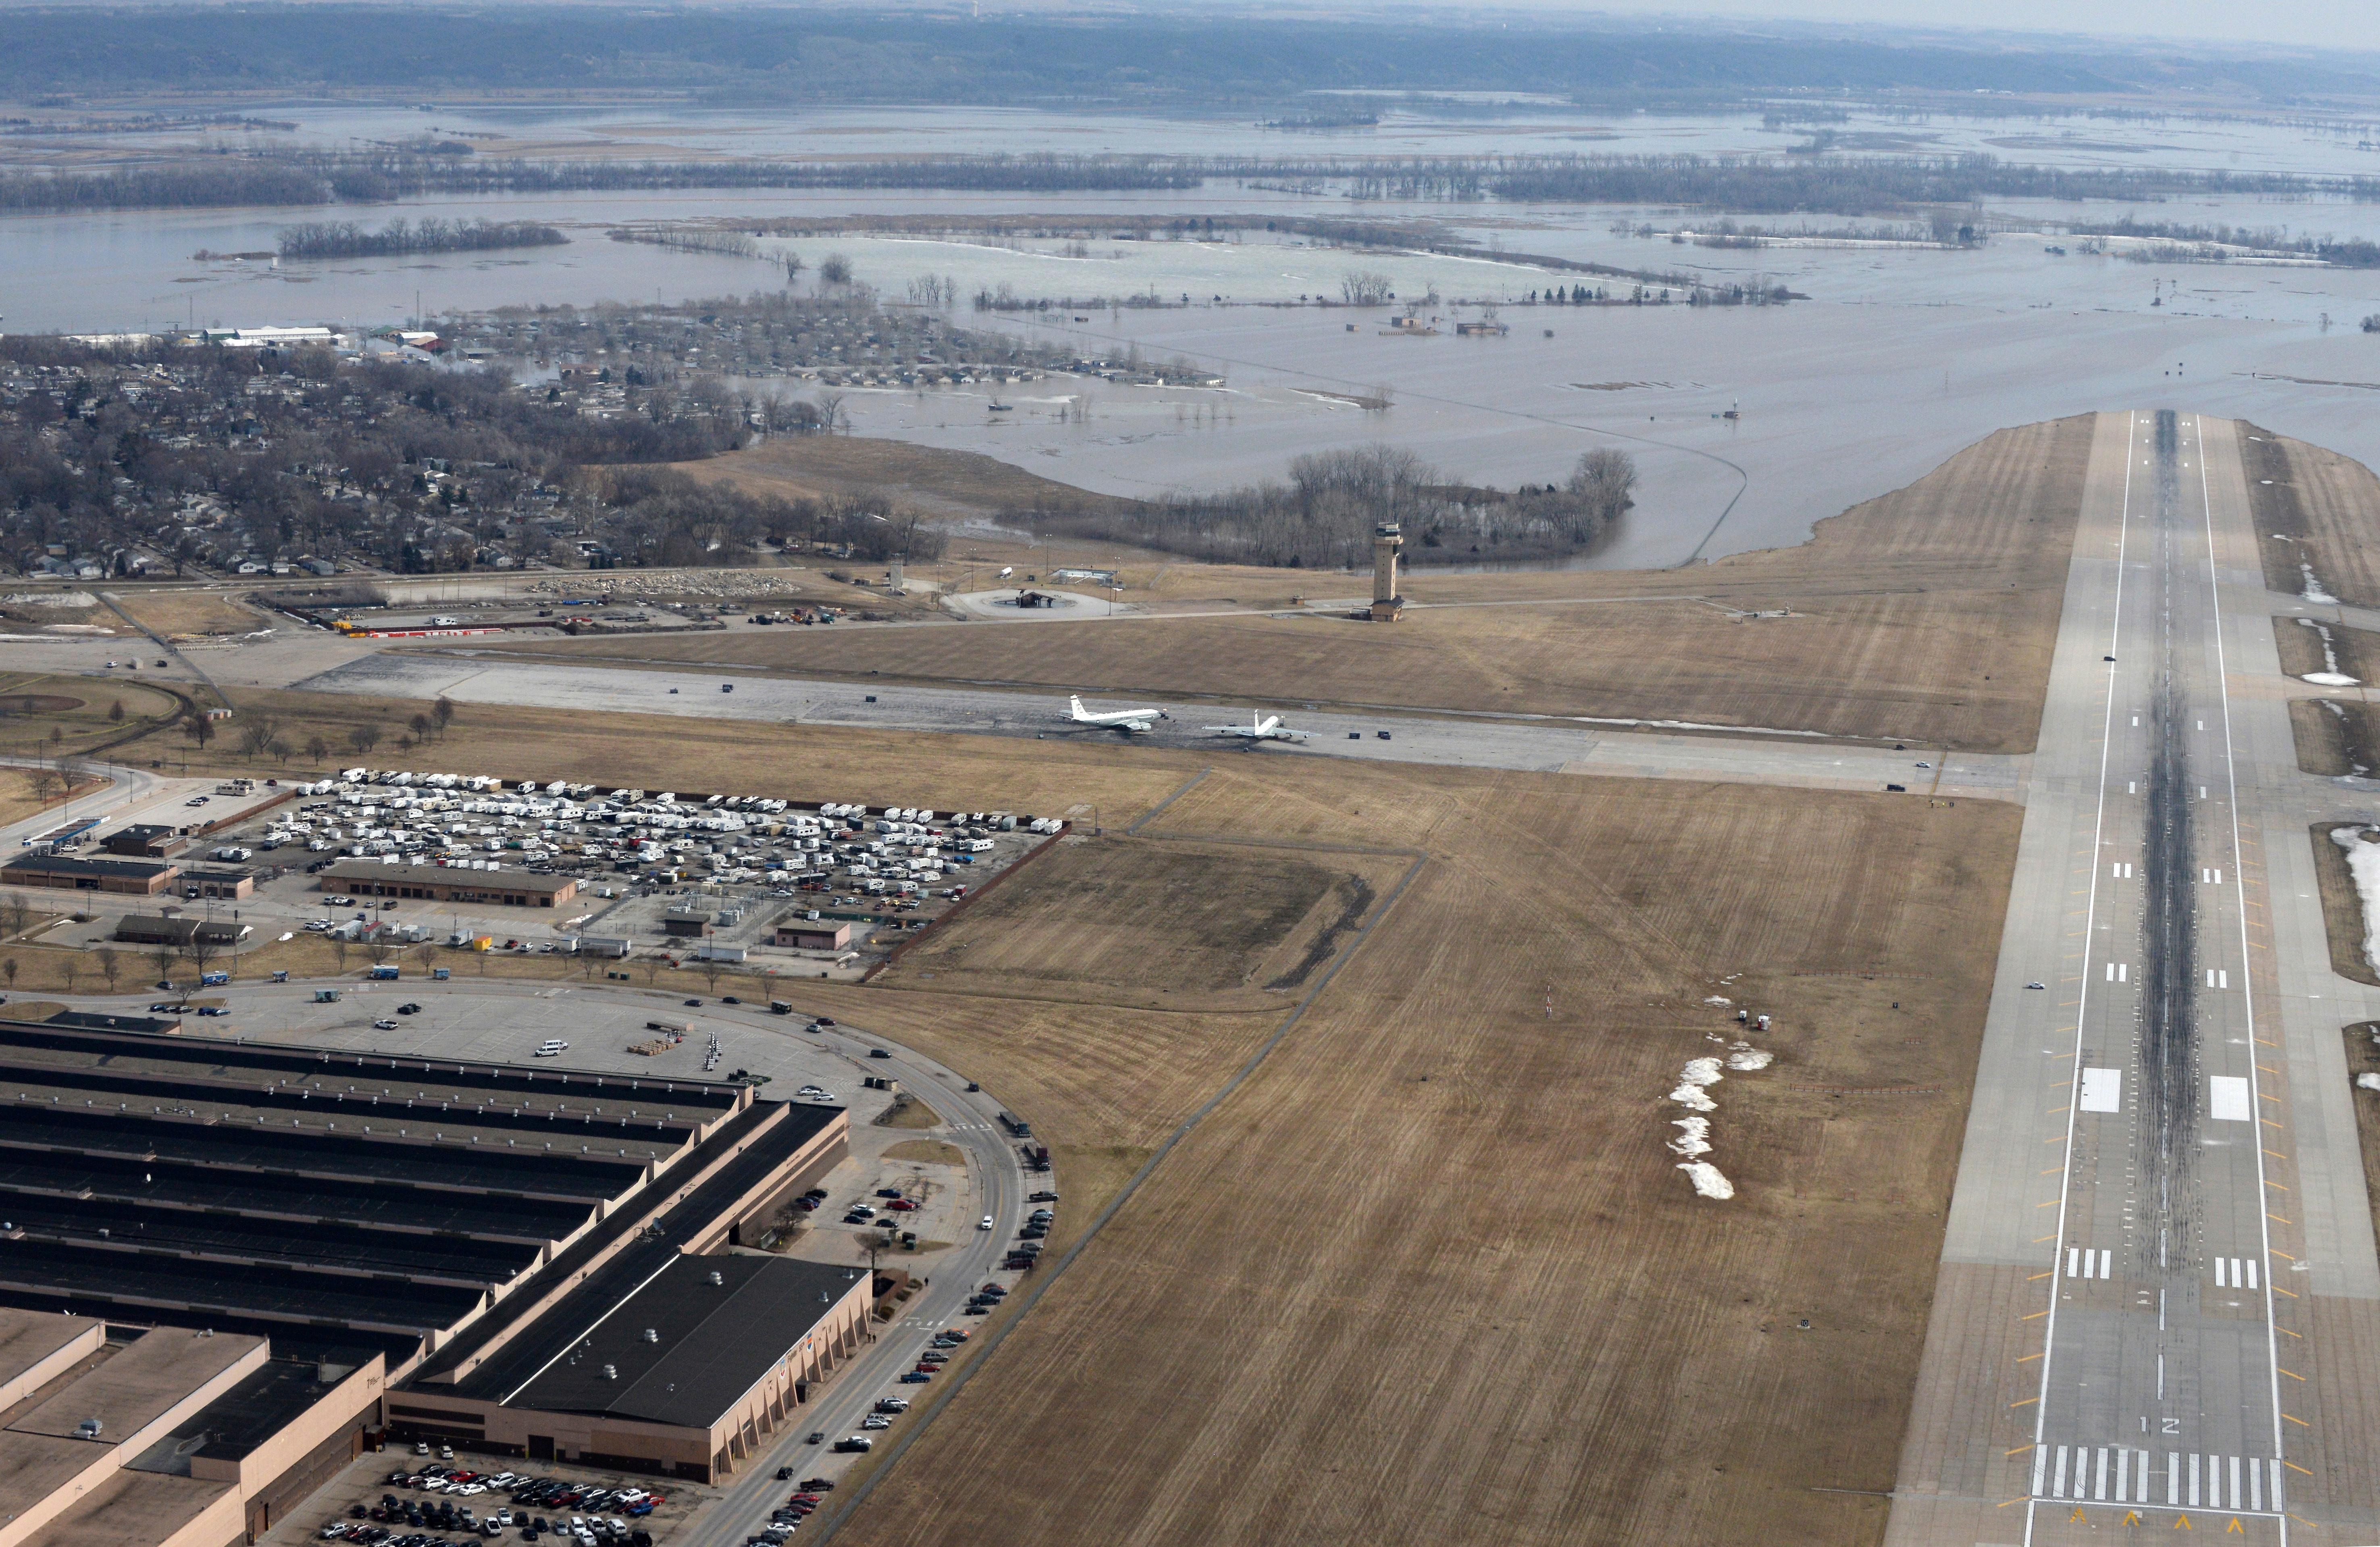 This March 17, 2019 photo released by the U.S. Air Force shows an aerial view of Offutt Air Force Base and the surrounding areas affected by flood waters in Neb.. (Tech. Sgt. Rachelle Blake/The U.S. Air Force via AP)